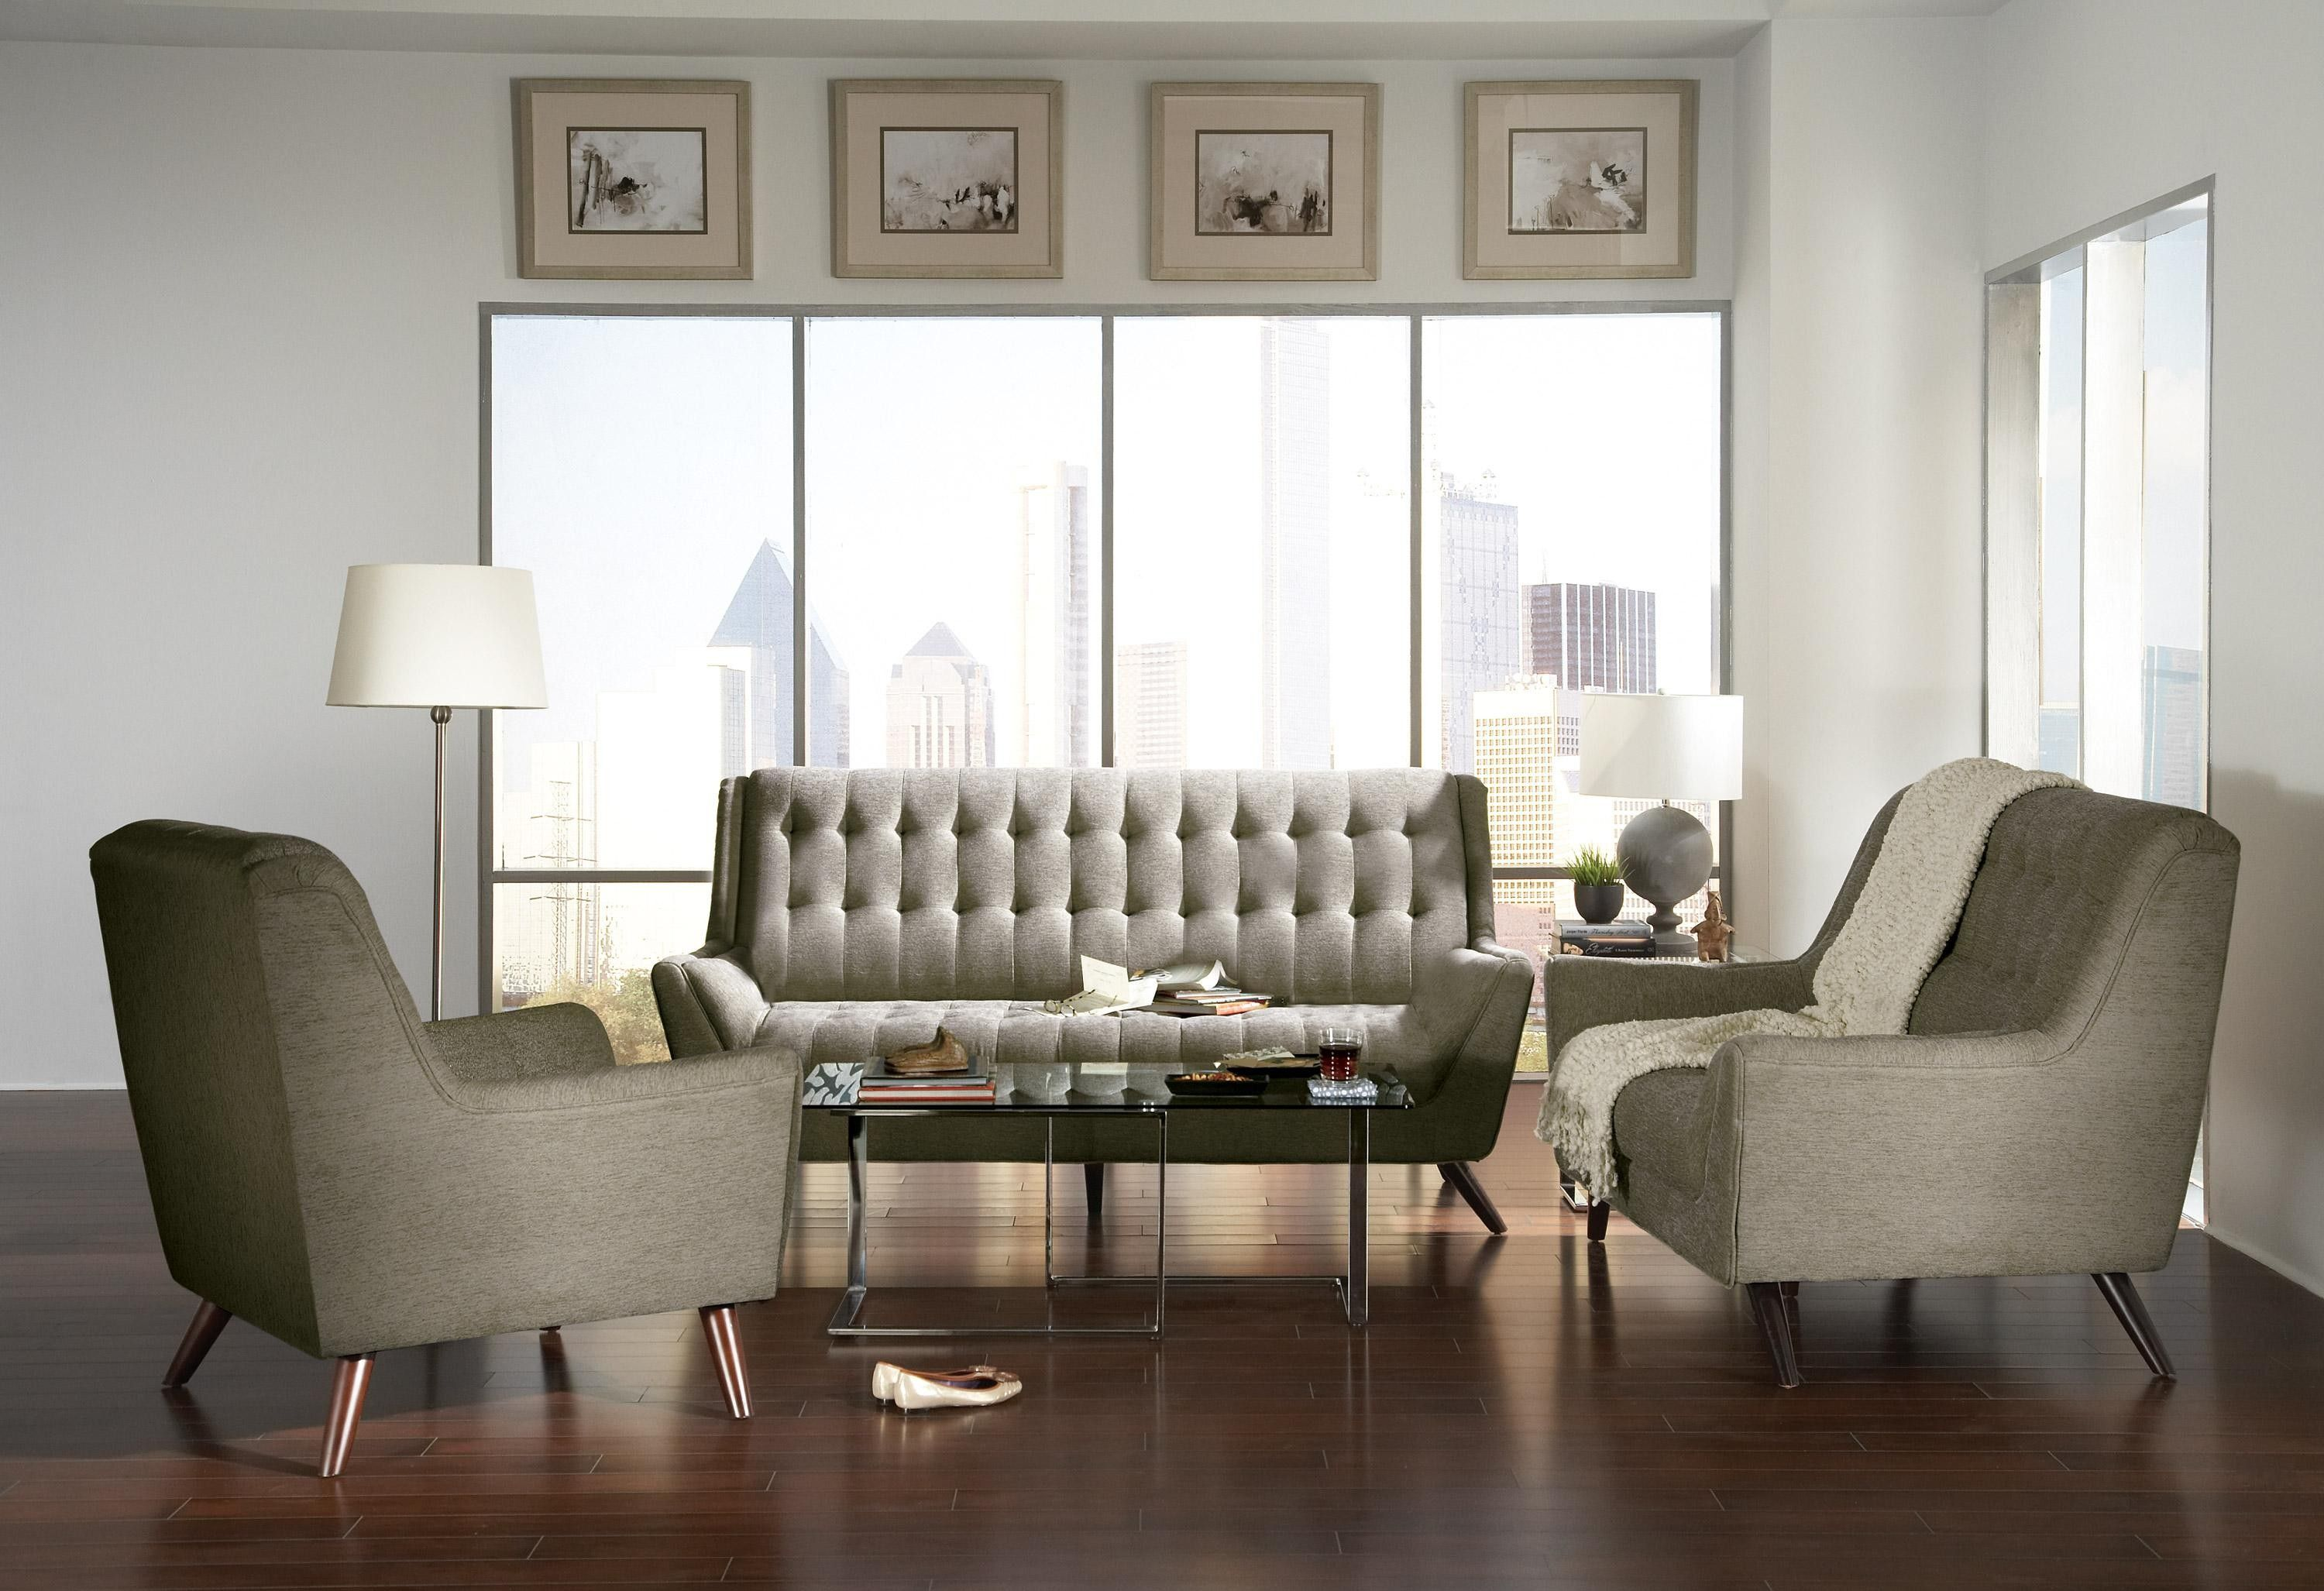 Coaster 3 Pieces Natalia Grey Retro Living Room Sofa Set